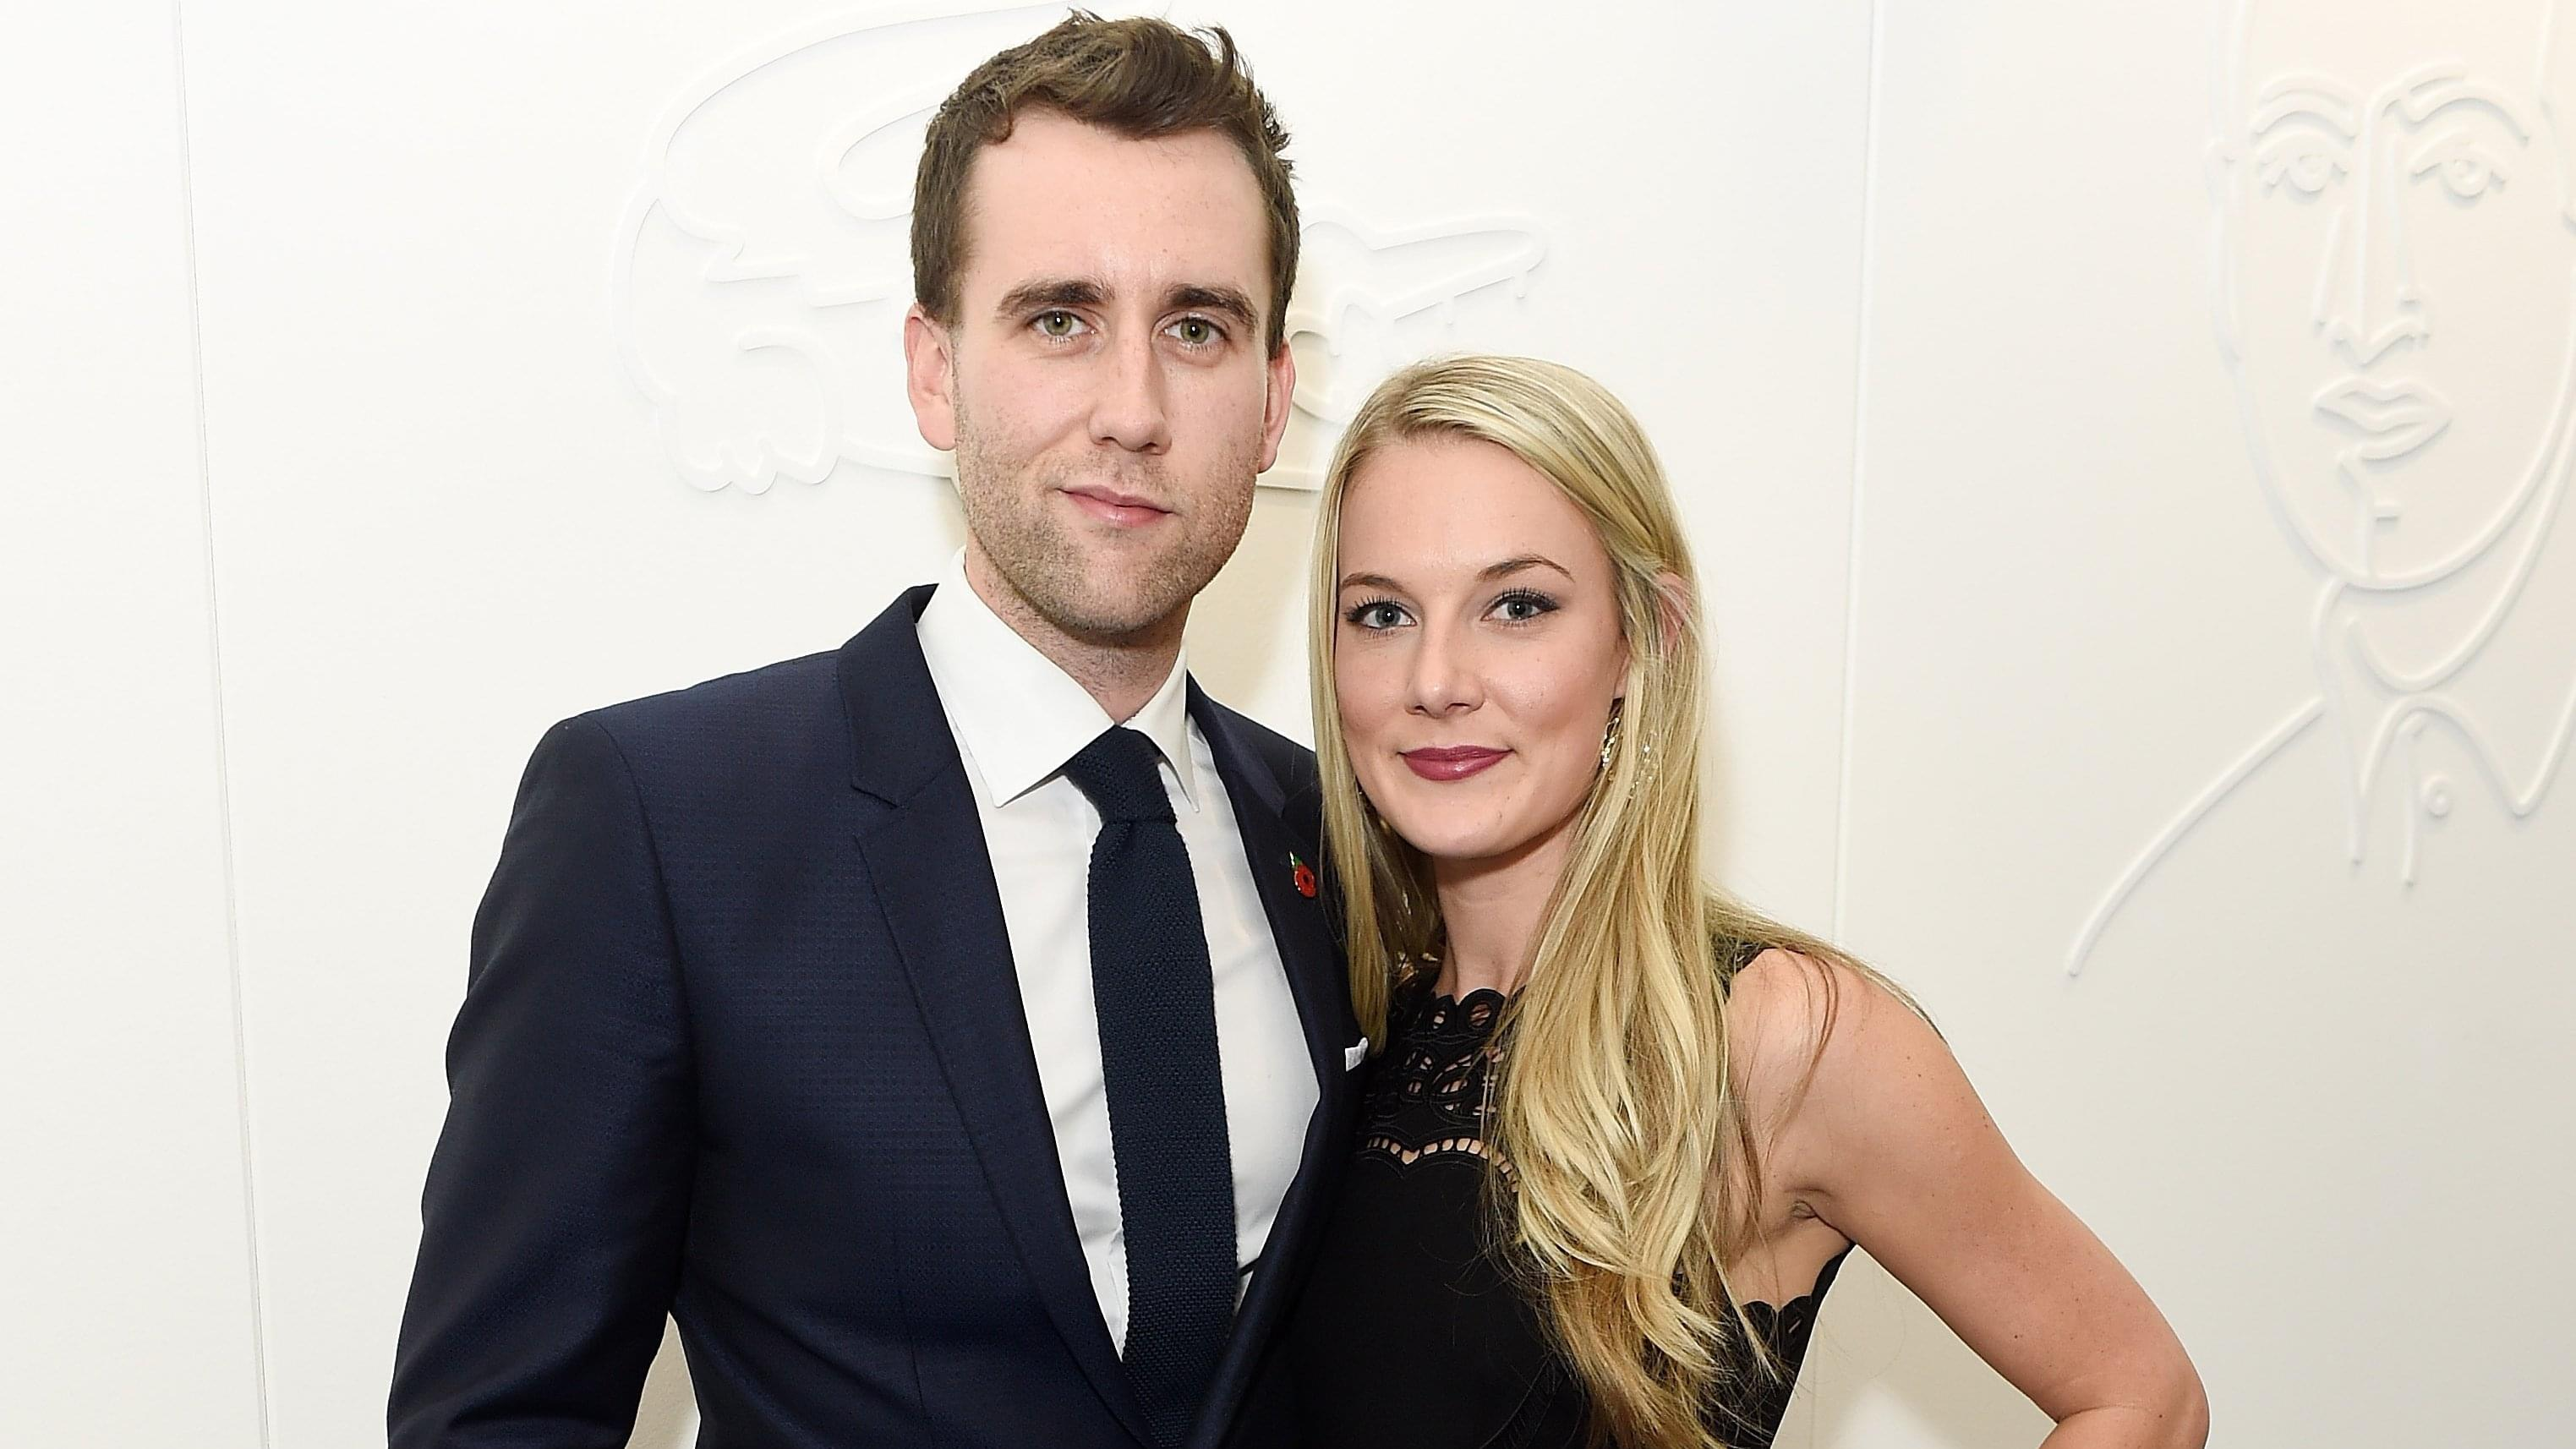 'HARRY POTTER' STAR MATTHEW LEWIS WEDS